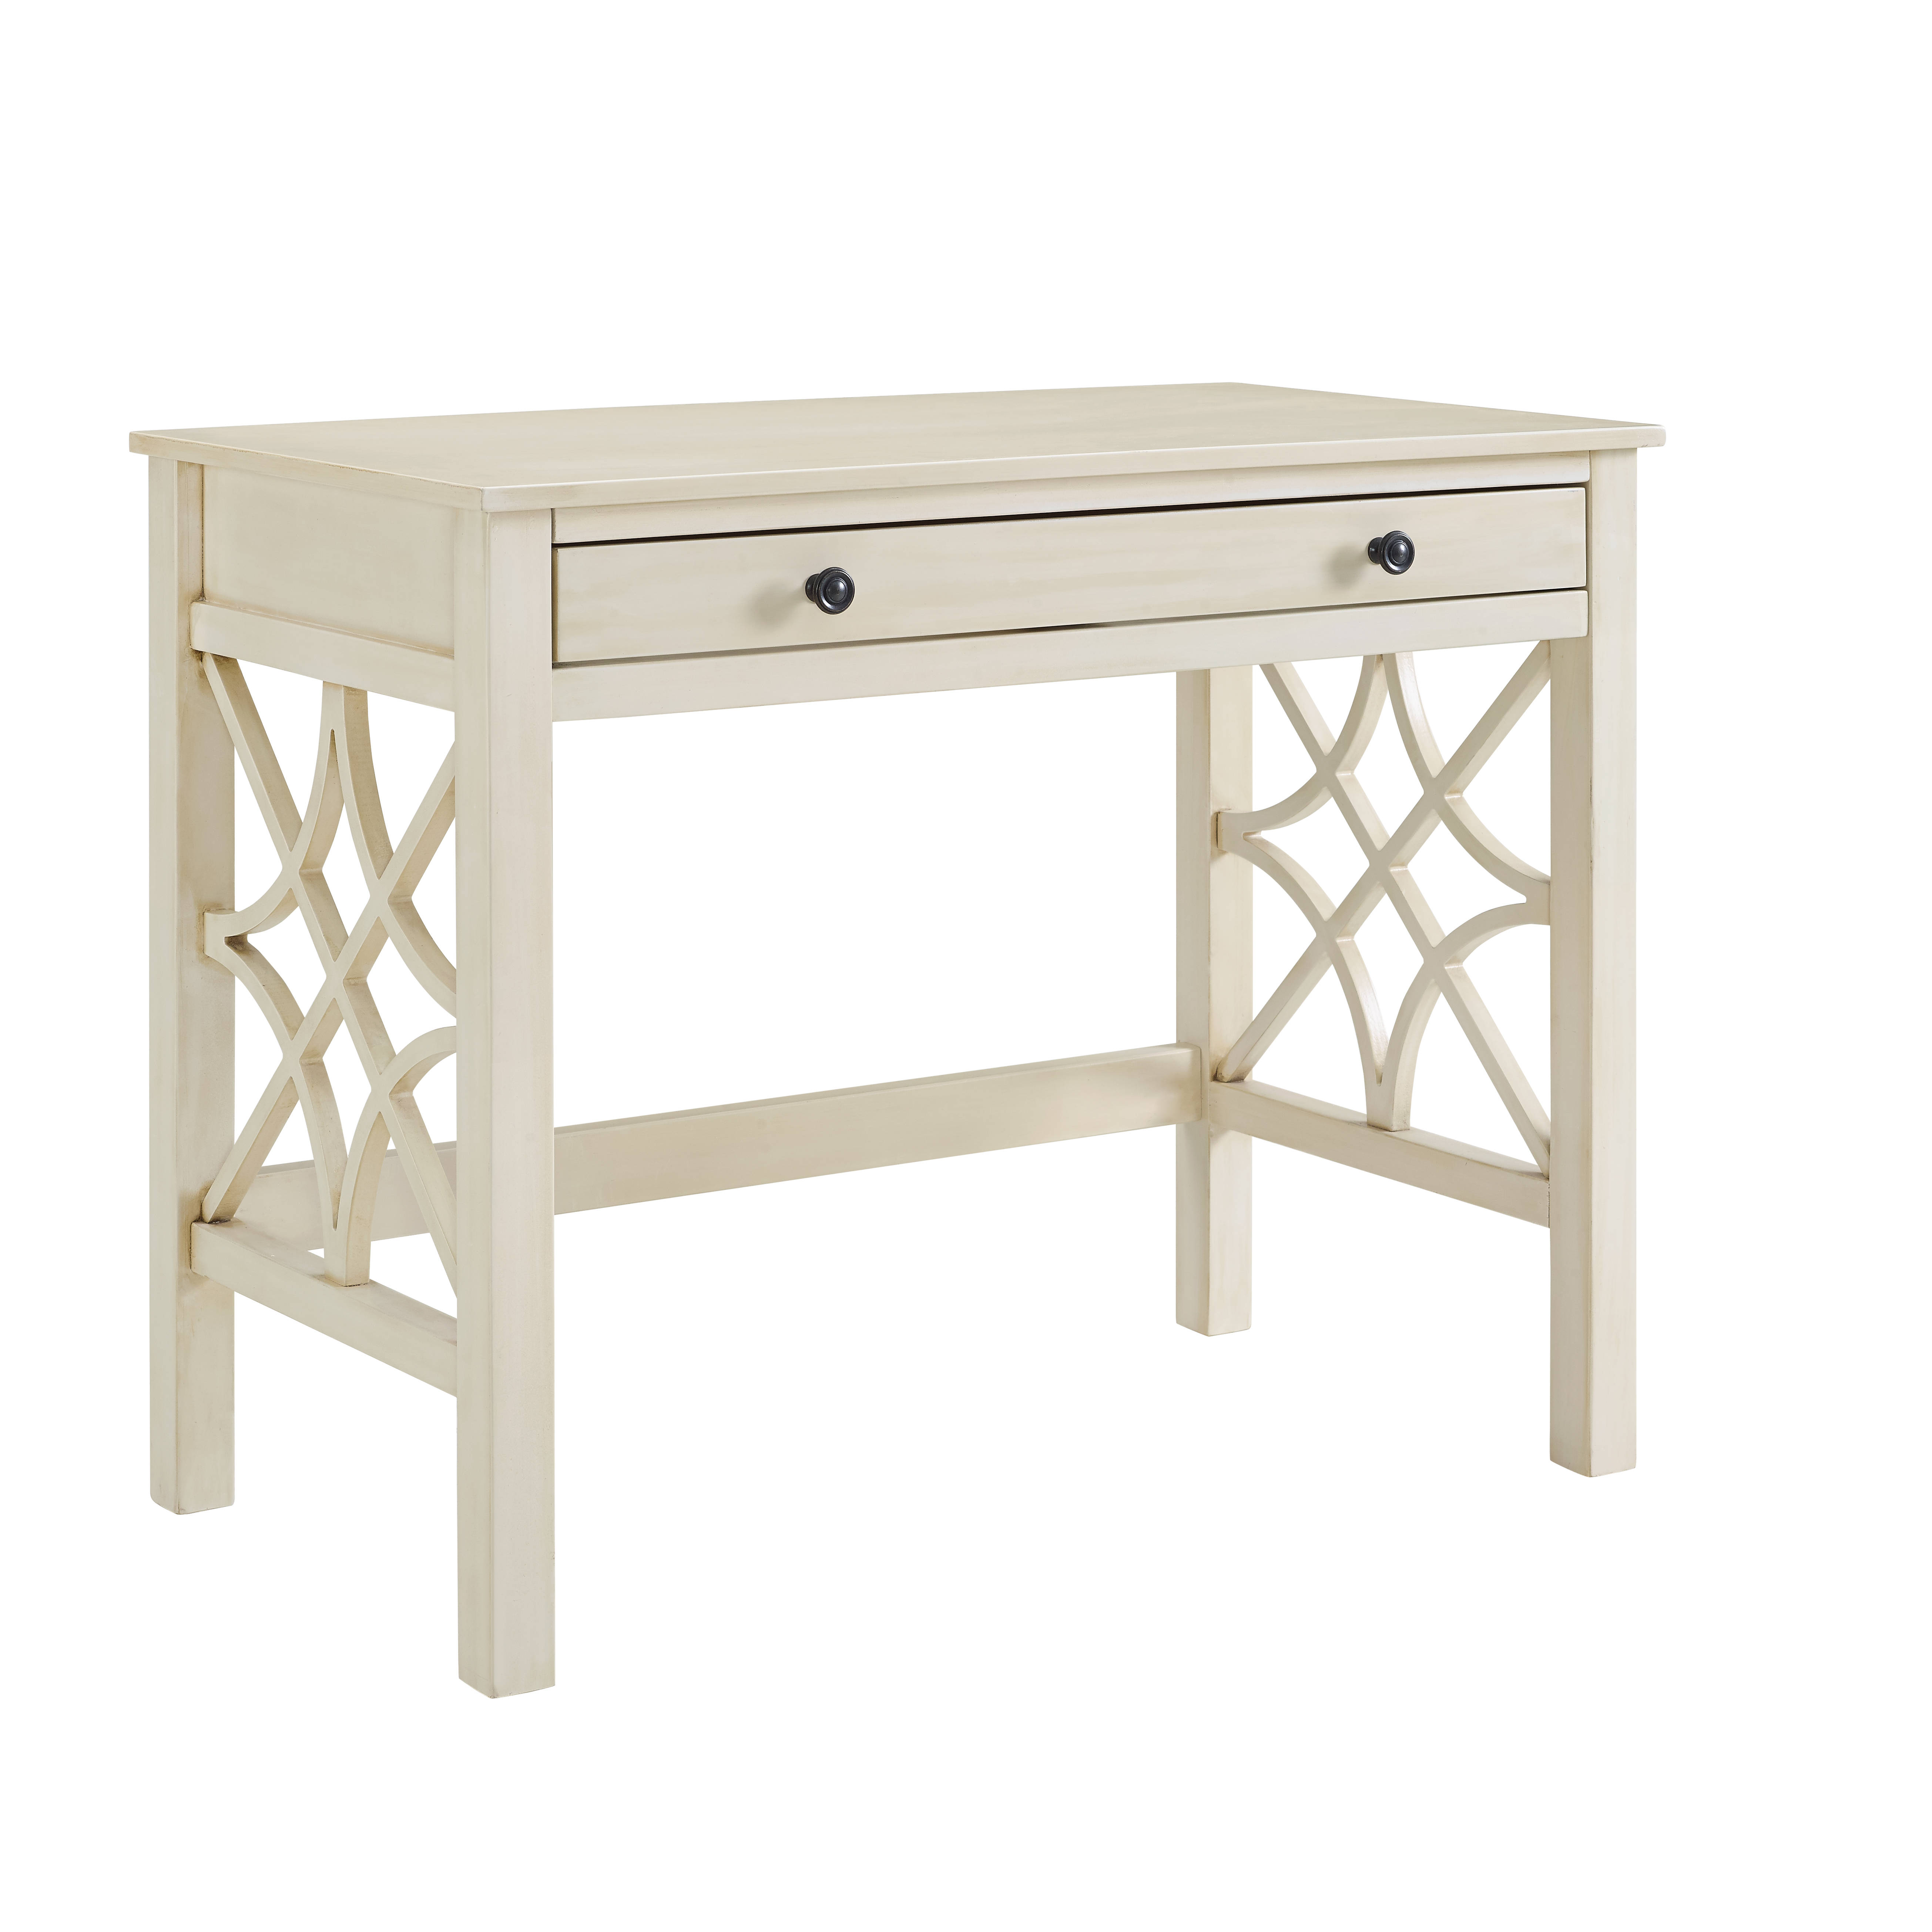 Linon whitley antique white office furniture set the classy home - Antique white home office furniture ...